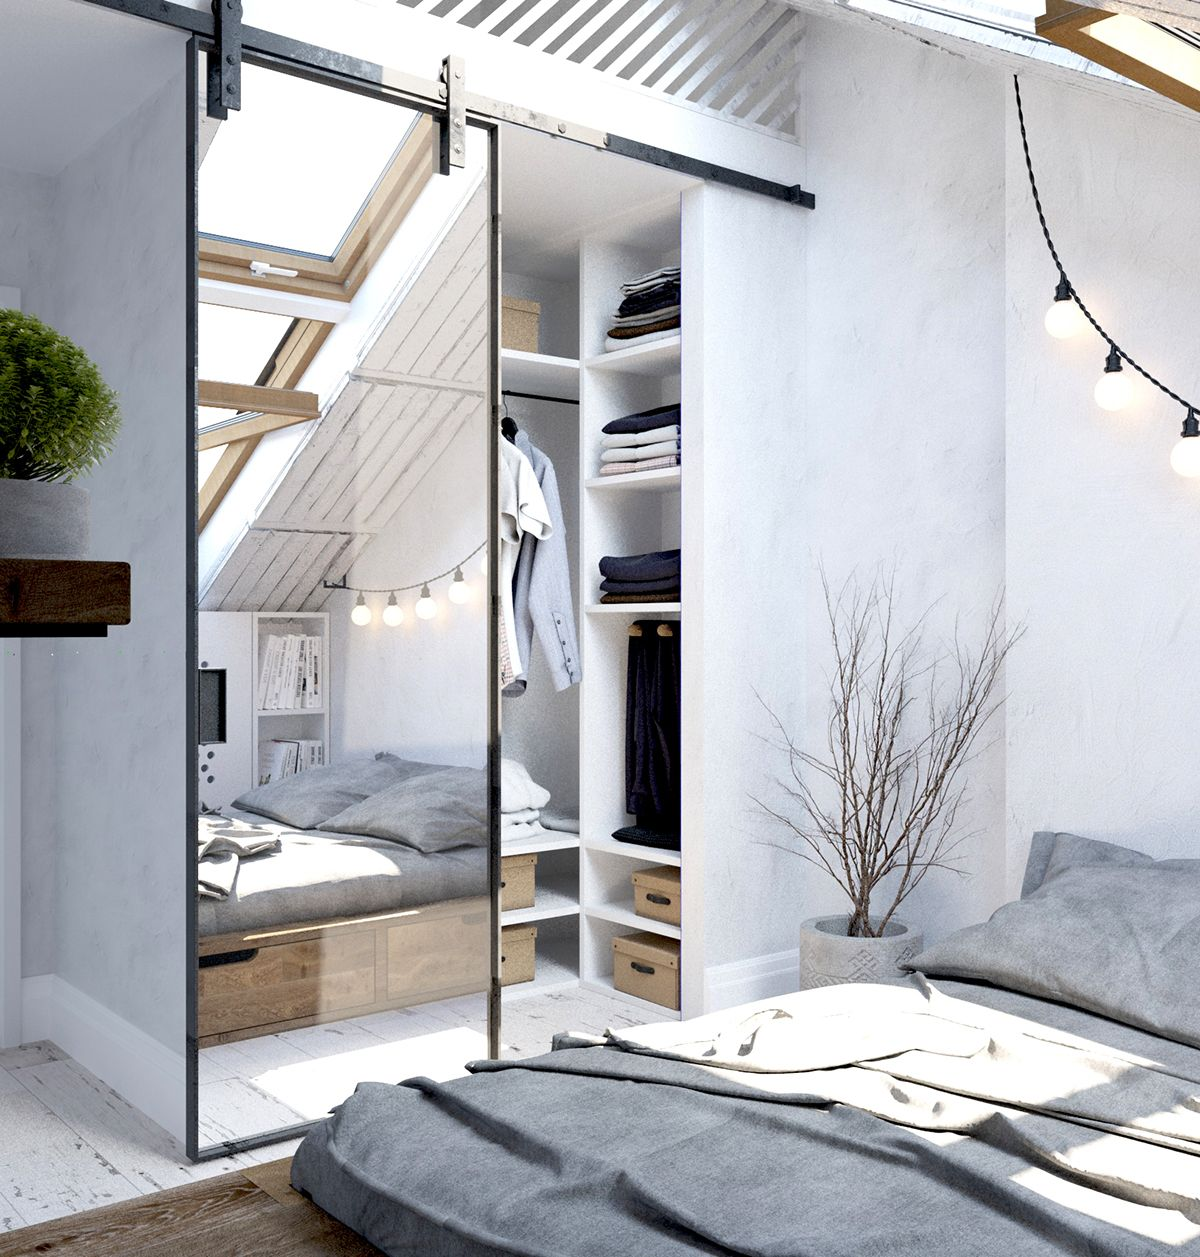 Mirrored Sliding Door Master Bedrooms Decor Small Master Bedroom Bedroom Design